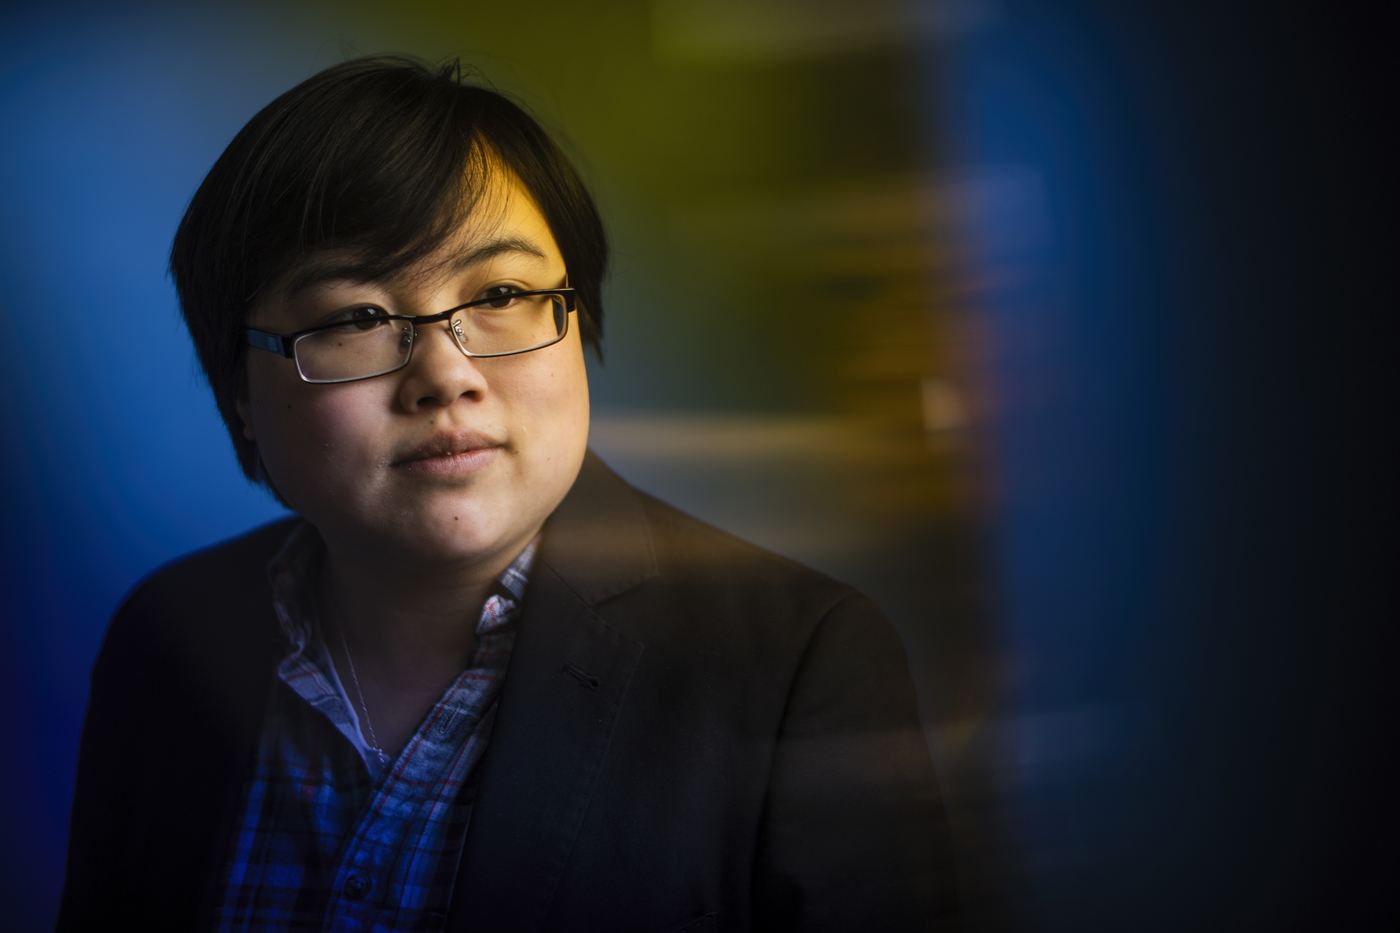 [Photo: Headshot of Lydia Brown, young East Asian person, with stylized blue and yellow dramatic background. They are looking in the distance and wearing a plaid shirt and black jacket. Photo by Adam Glanzman.]